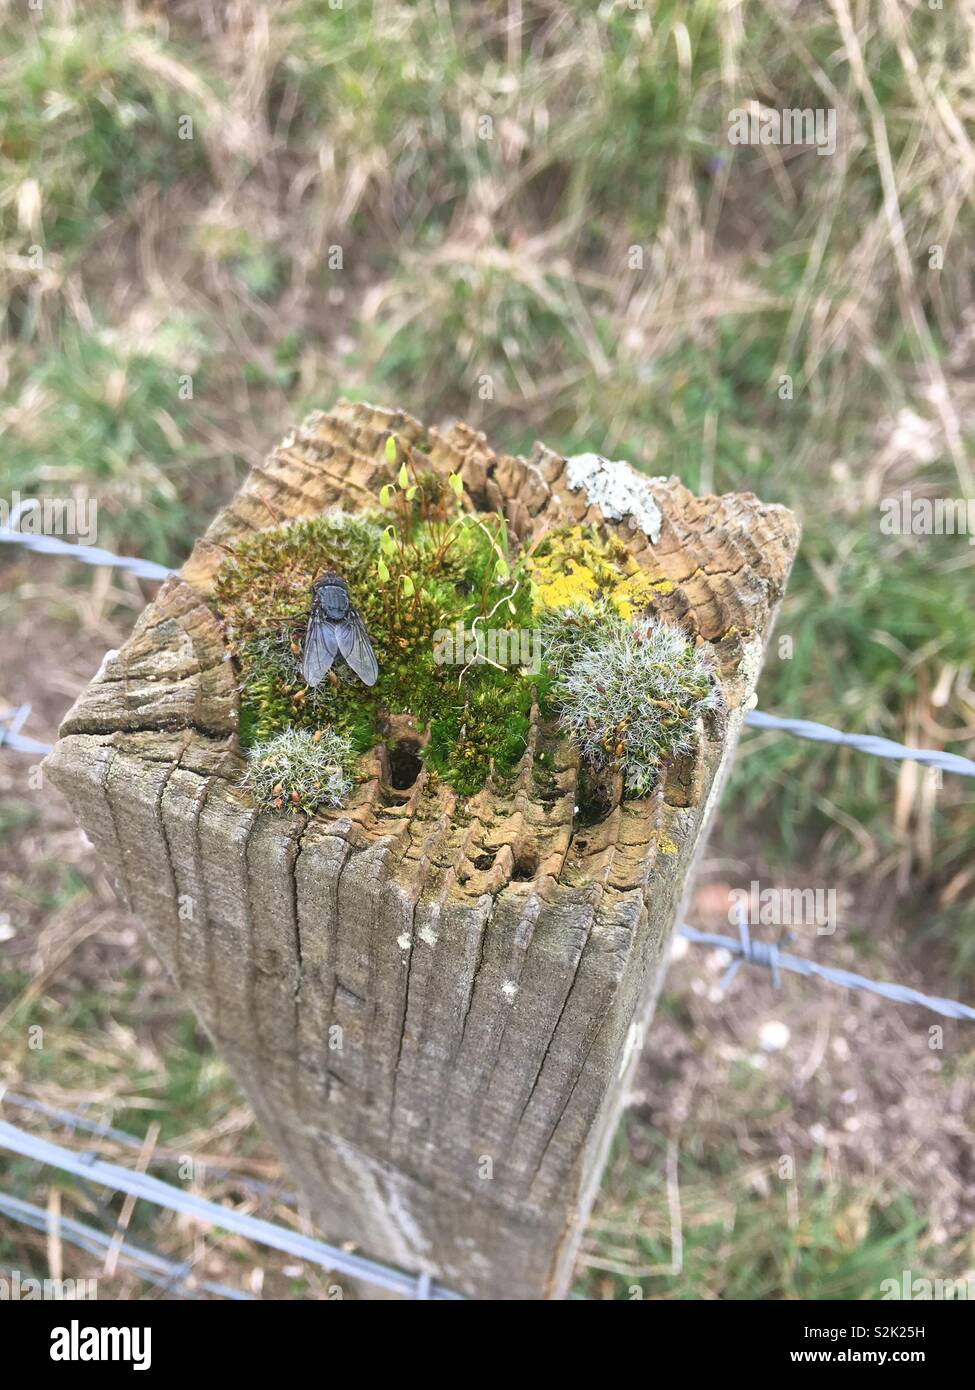 Plans colonization of fence post Lake Swanbourne Arundel West Sussex England - Stock Image